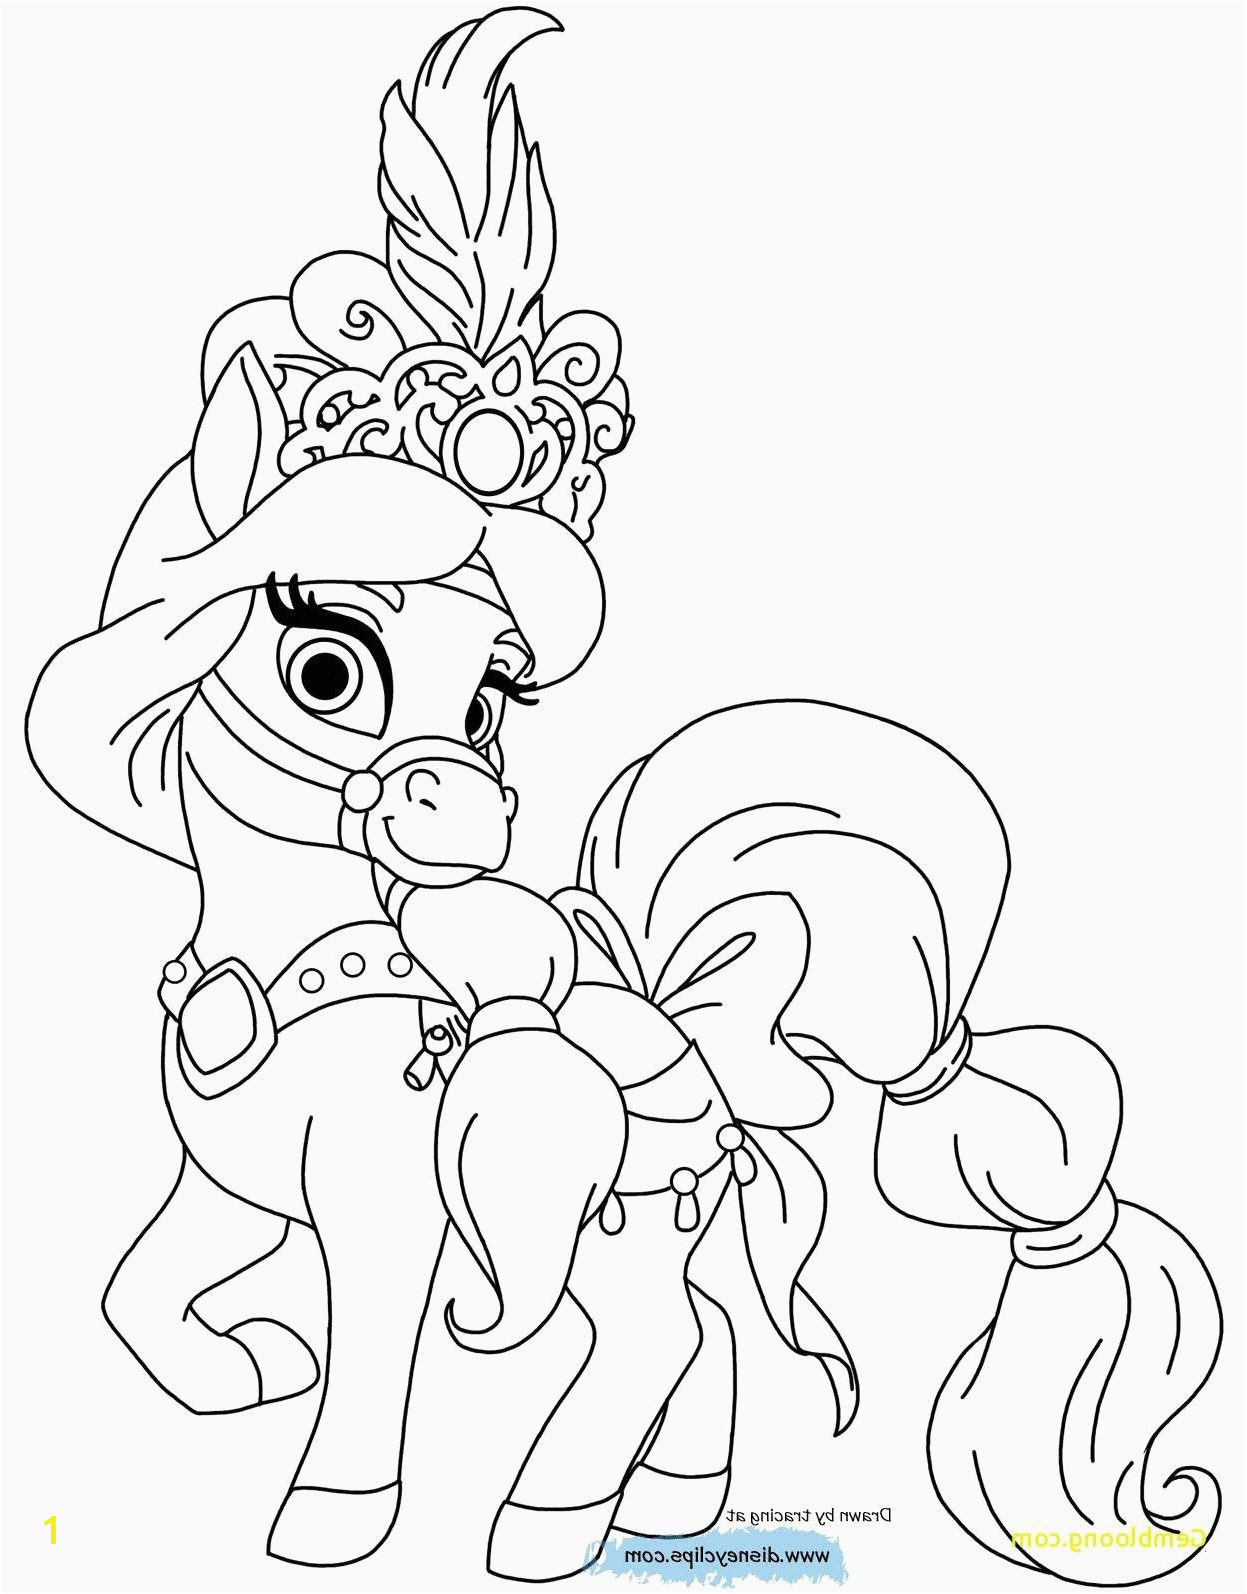 Disney Princess Coloring Pages Free to Print 24 Elegant Coloring Page Fashion Dengan Gambar